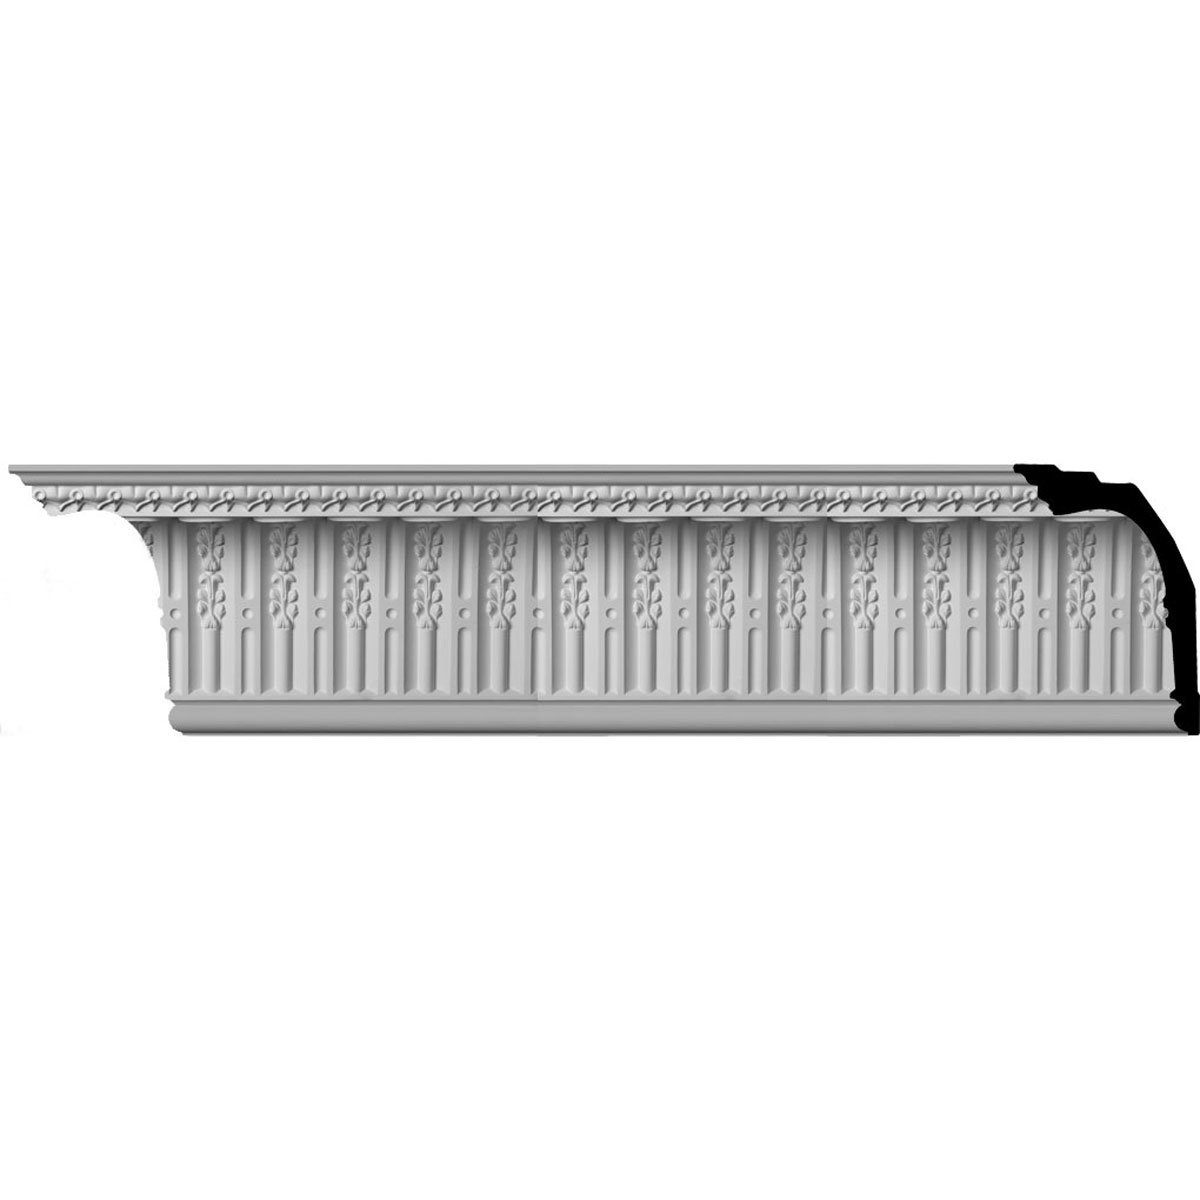 Ekena Millwork MLD11X08X13SP-CASE-12 11-3/8'' H x 8-1/8'' P x 13-7/8'' F x 96'' L Springtime Crown Molding with 3'' Repeat (12-Pack)